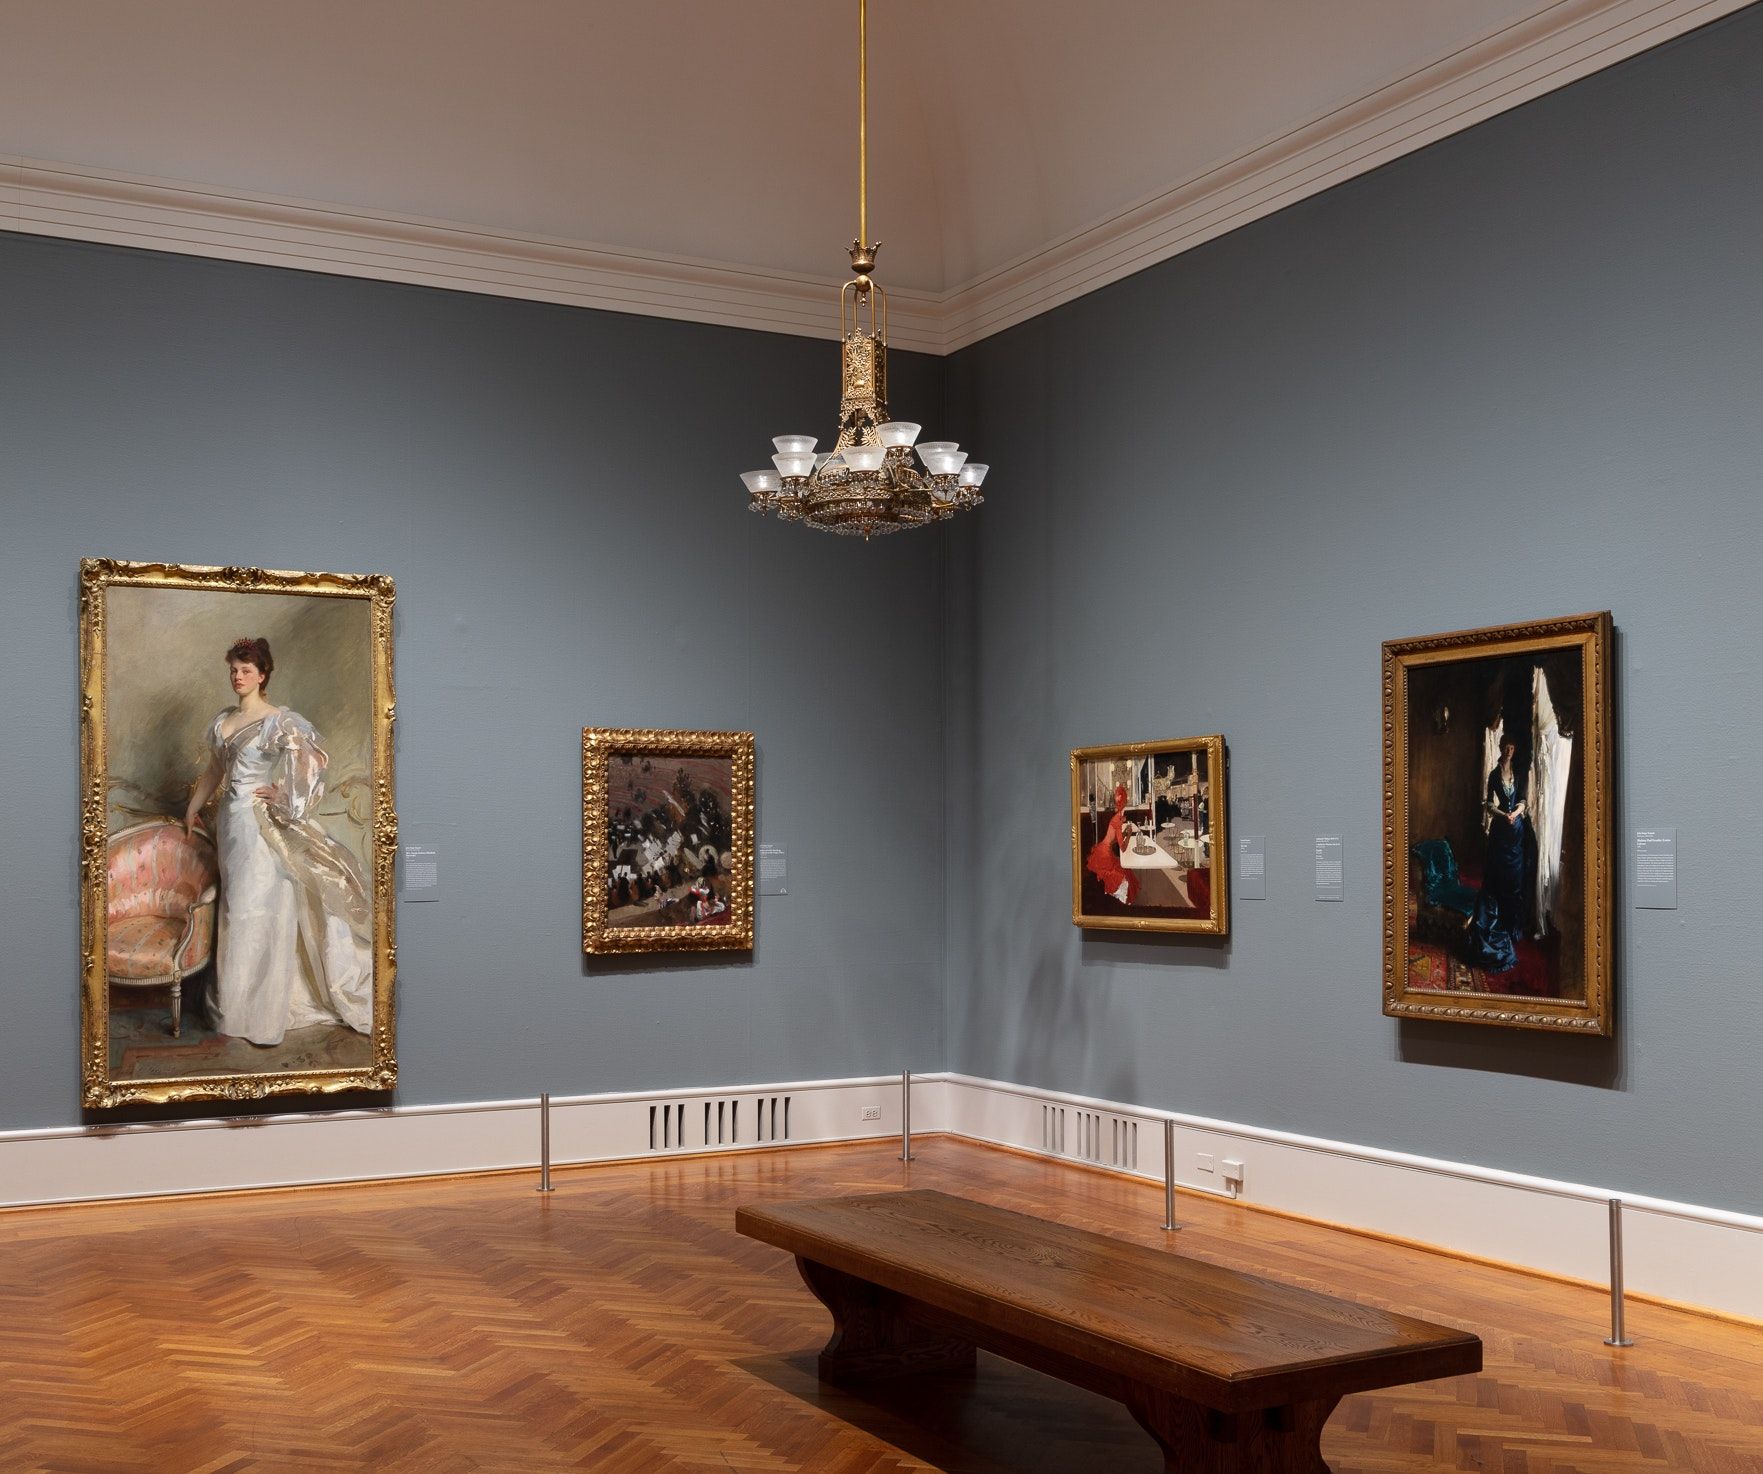 Photo showing a corner of the newly reinstalled gallery of American art, gallery 273, which features a gasolier and paintings by John Singer Sargent